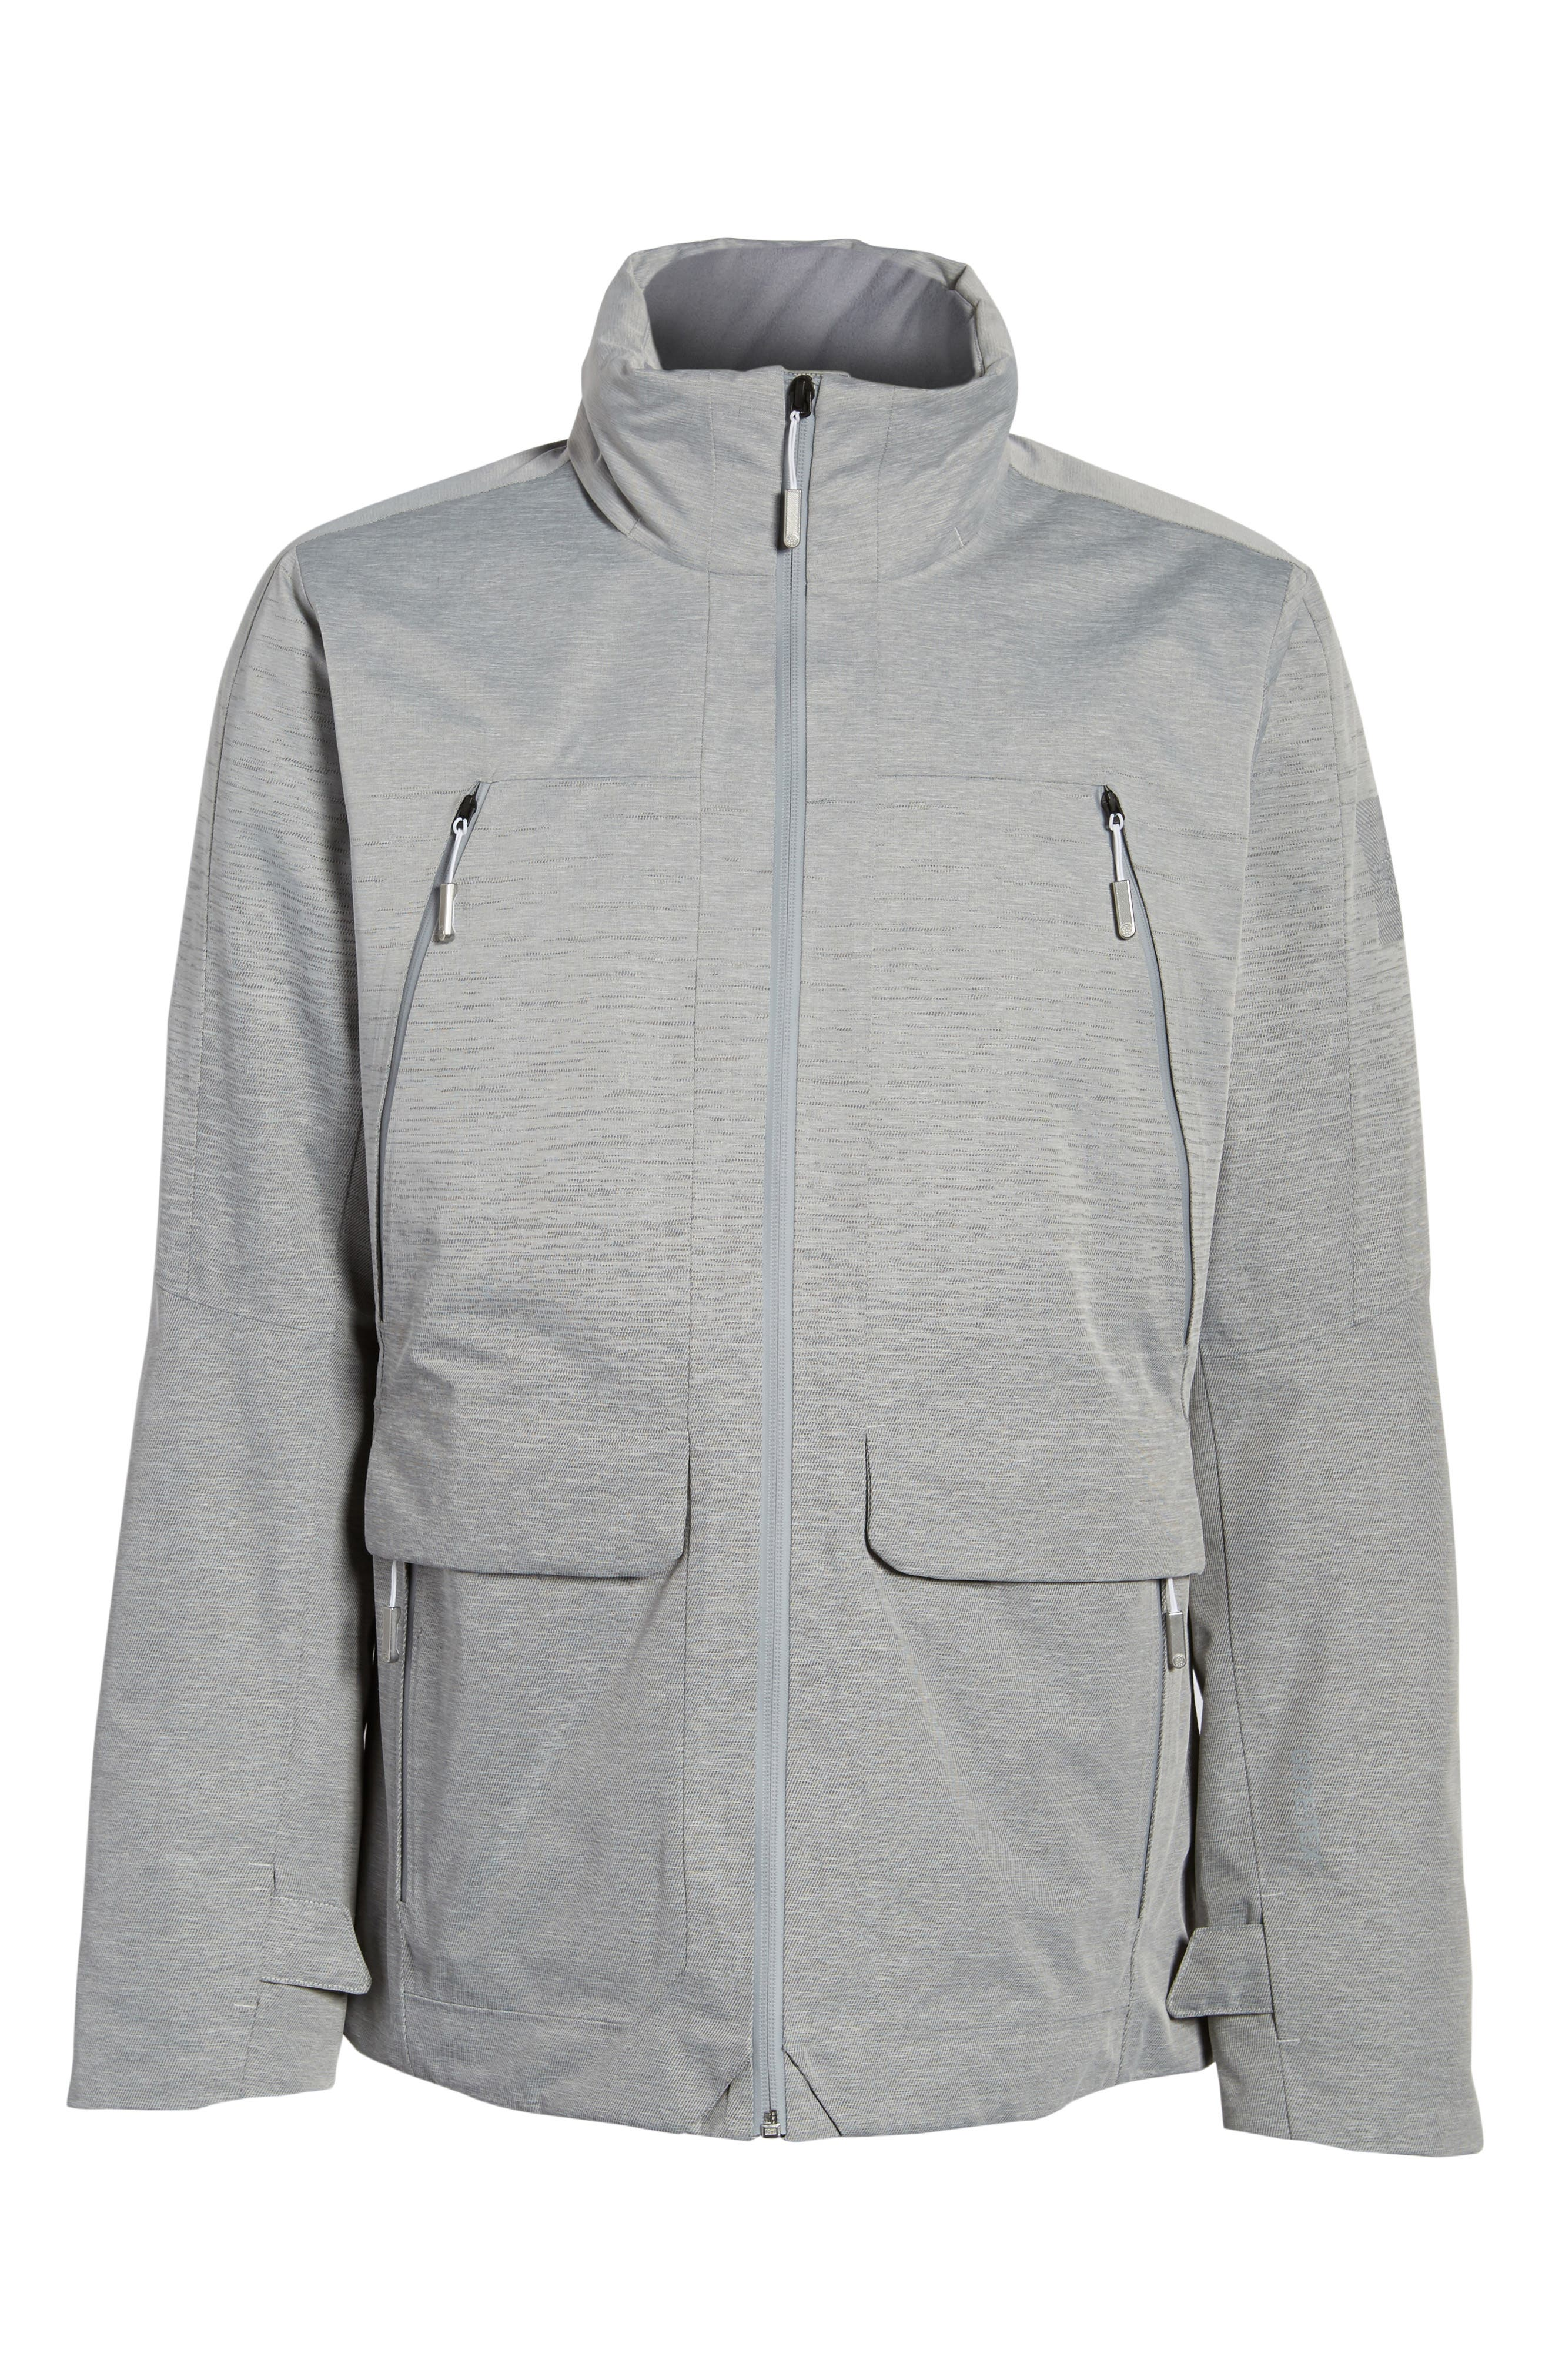 THE NORTH FACE,                             Cryos Gore-Tex<sup>®</sup> Jacket,                             Alternate thumbnail 5, color,                             030